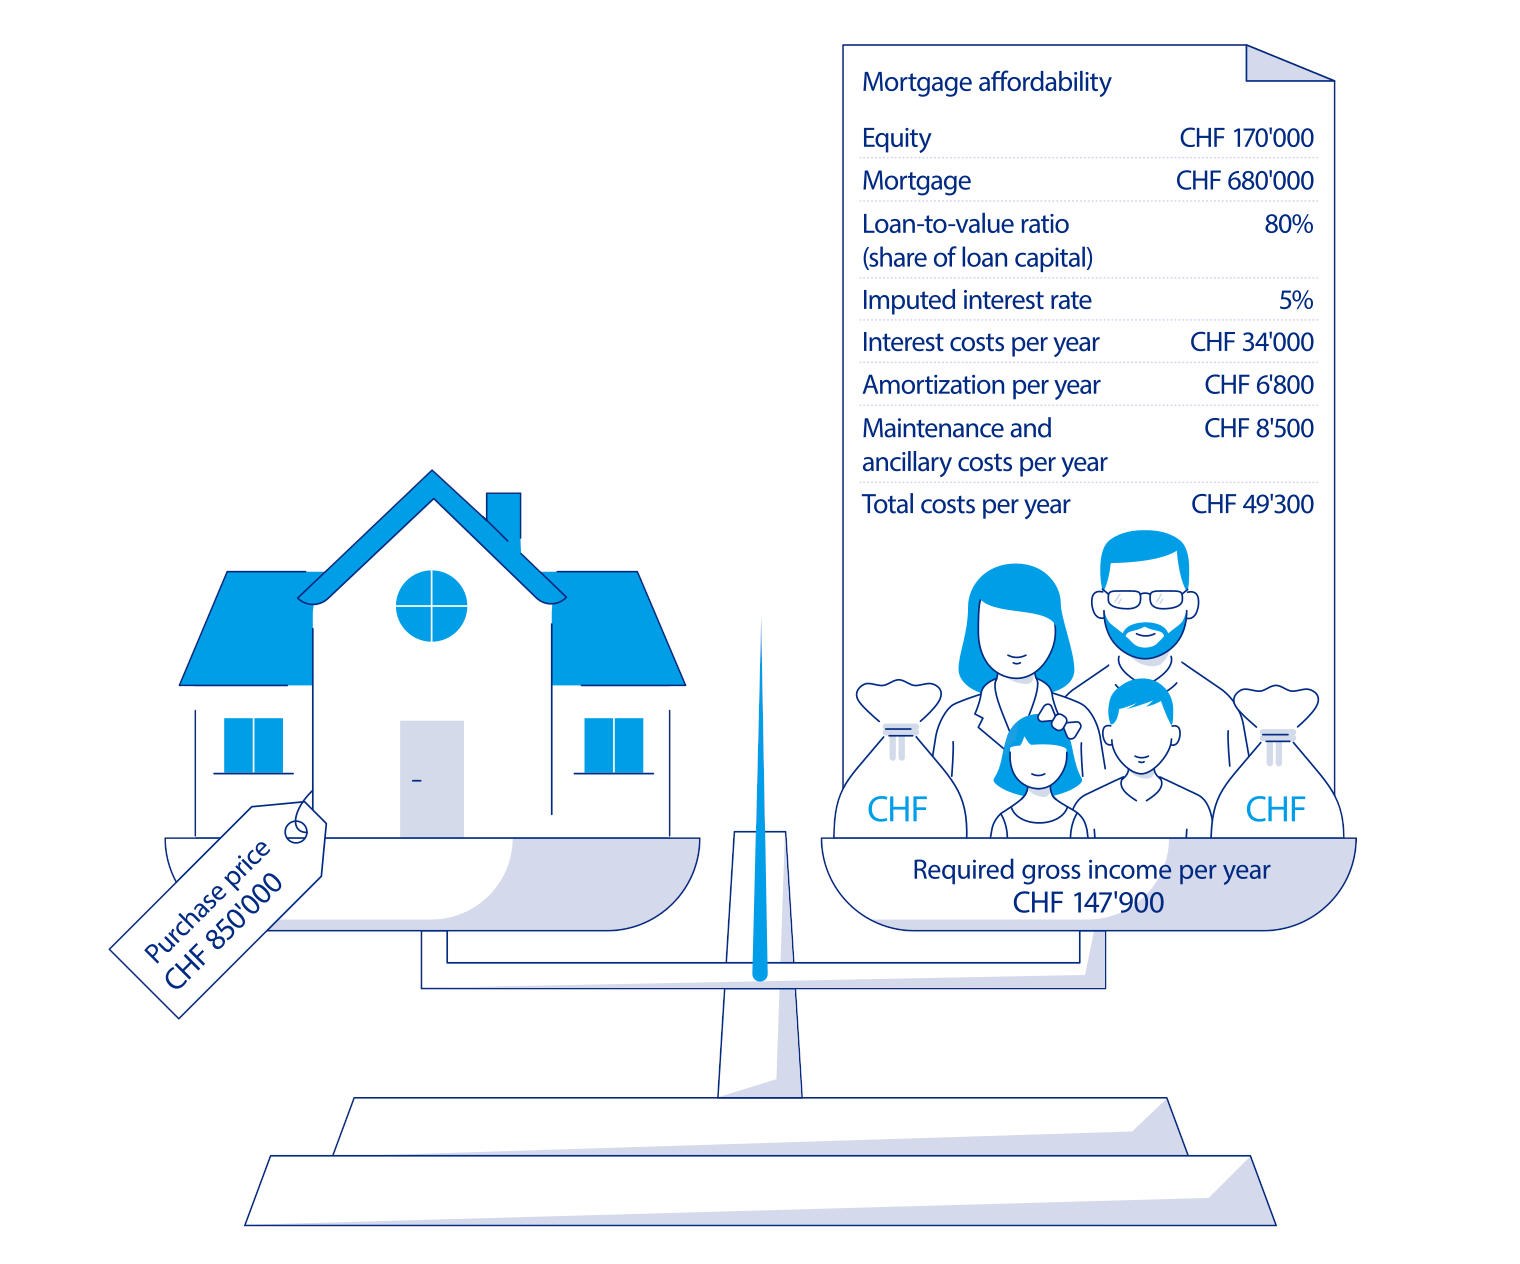 The graphic shows the affordability calculation for the family under normal conditions.